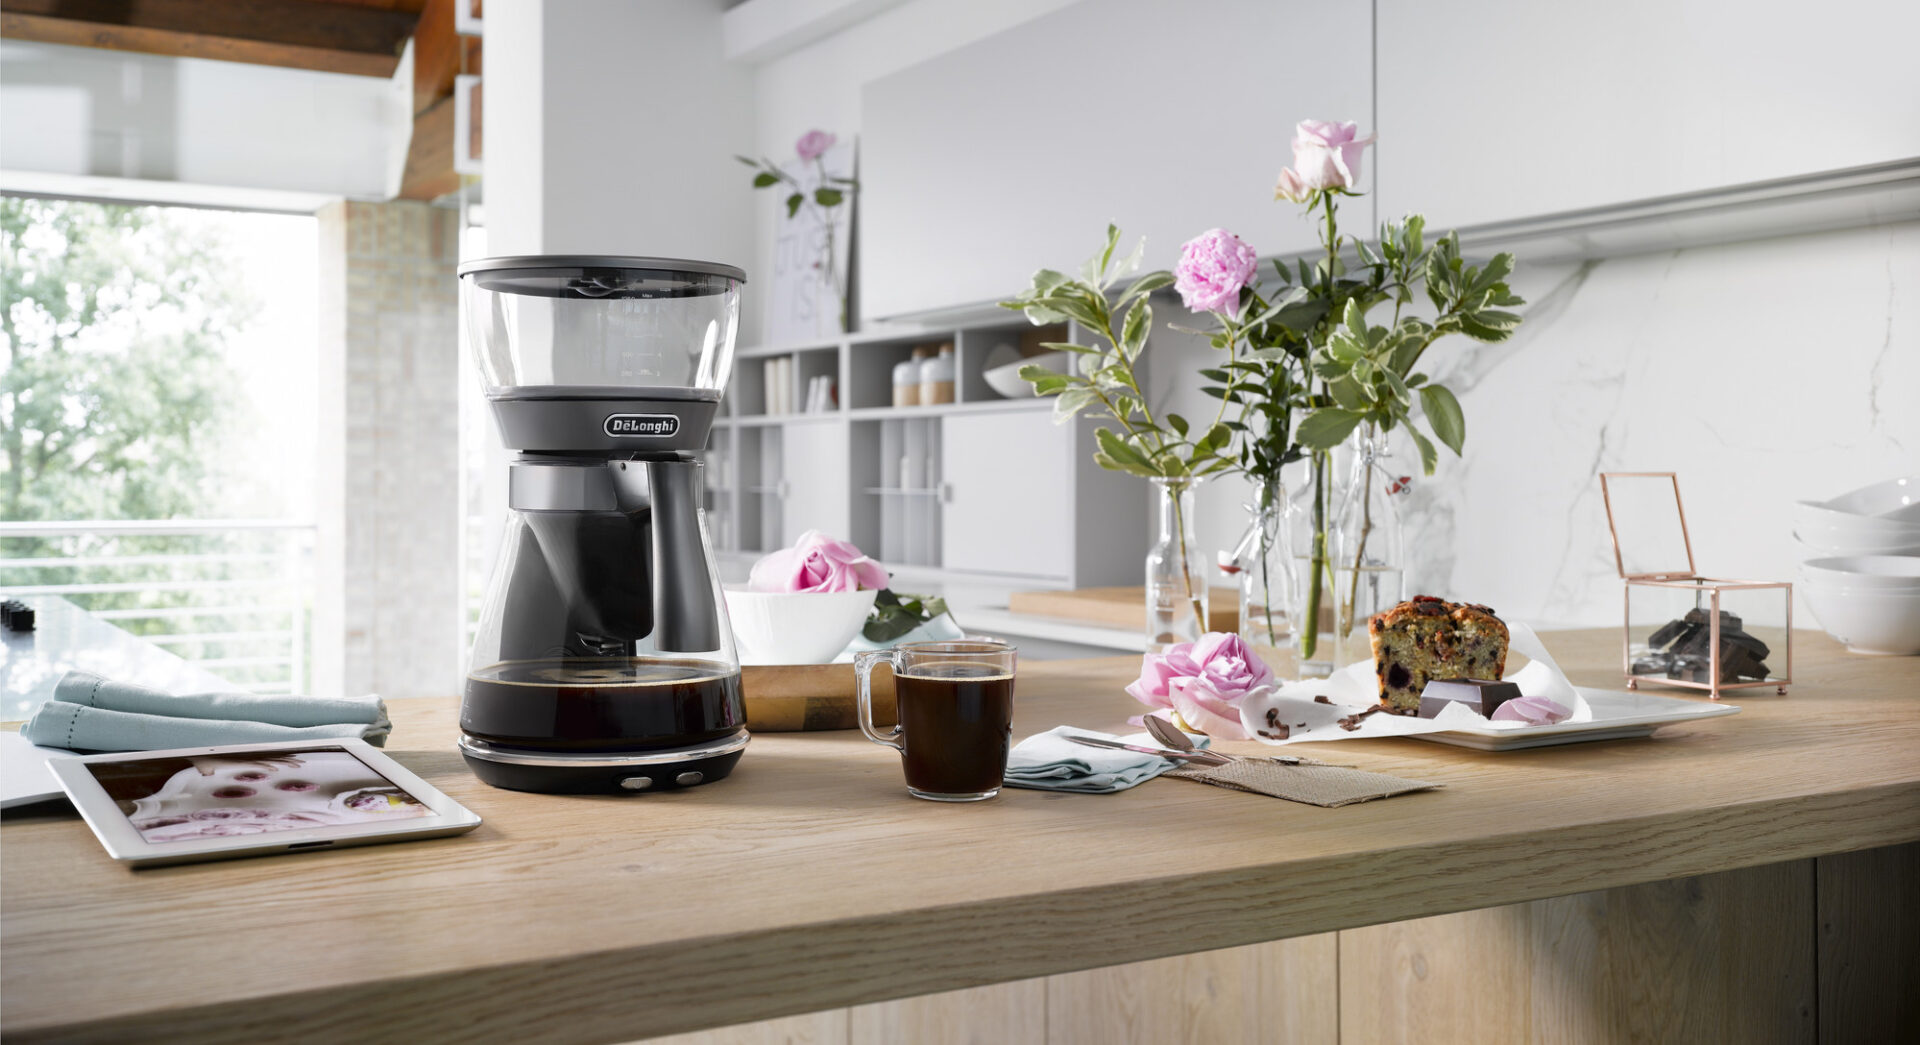 a drip coffee machine placed on a kitchen countertop